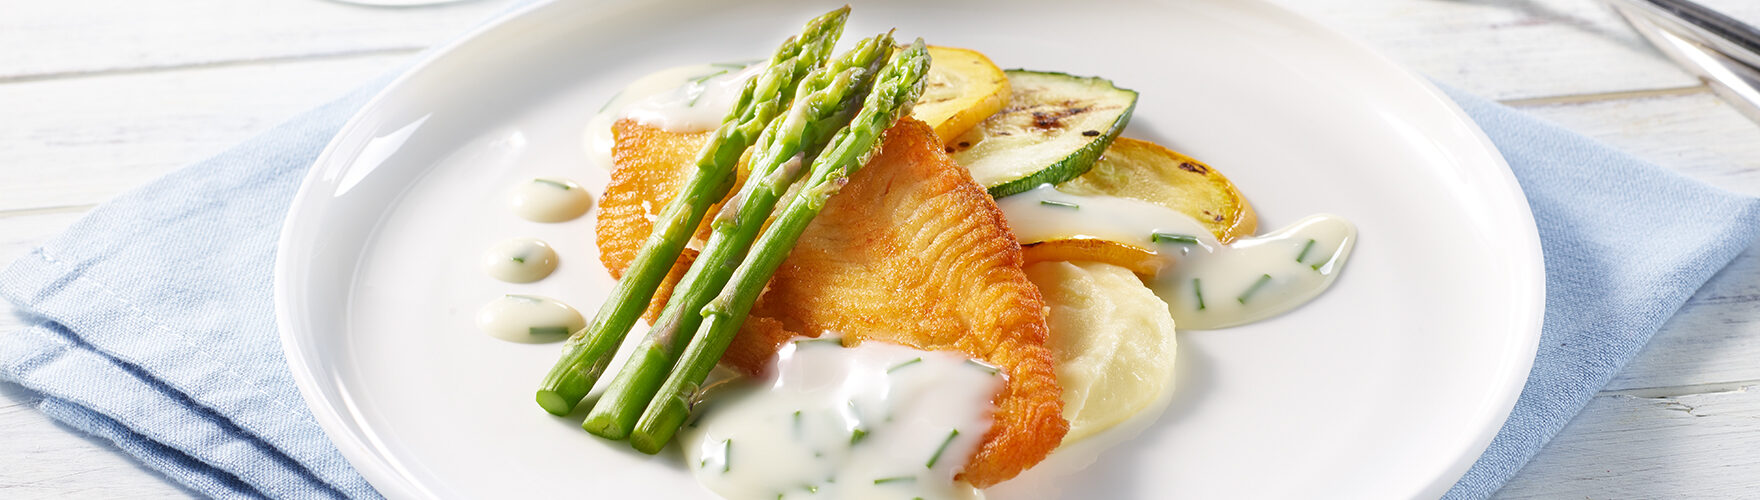 Fried plaice with green asparagus